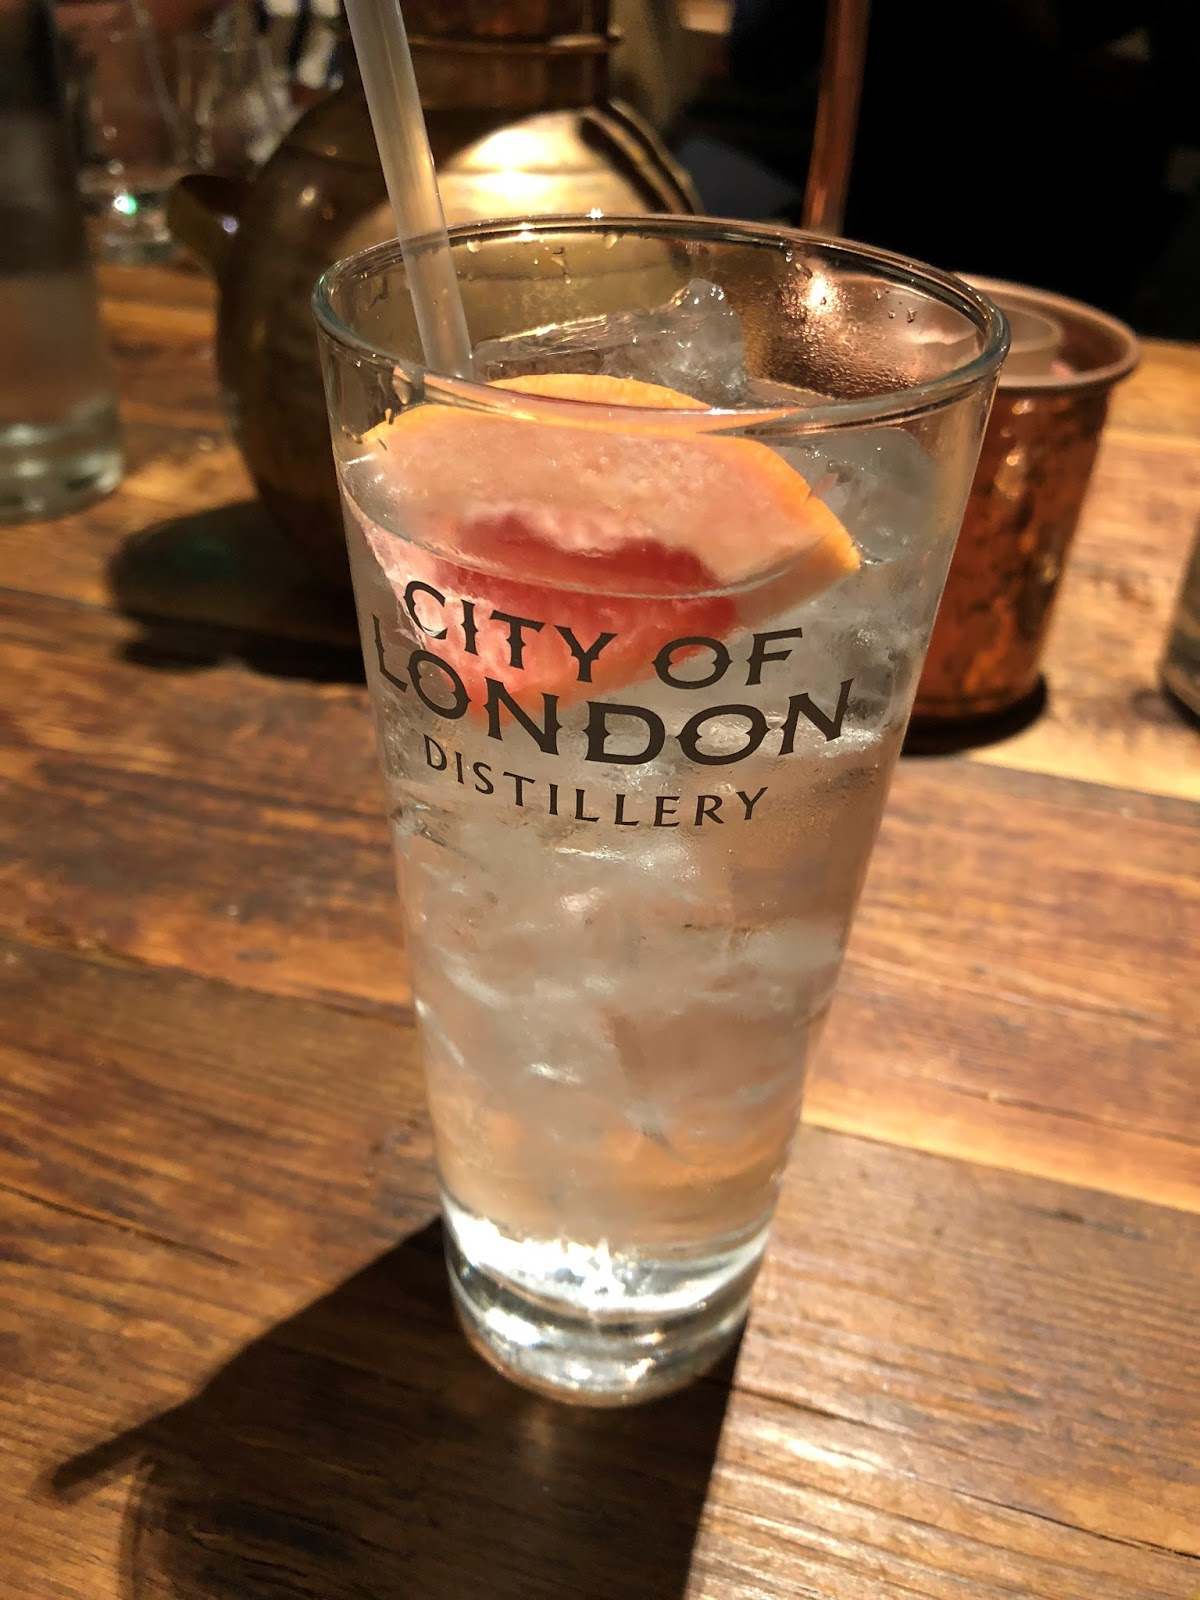 London gin distillery tour